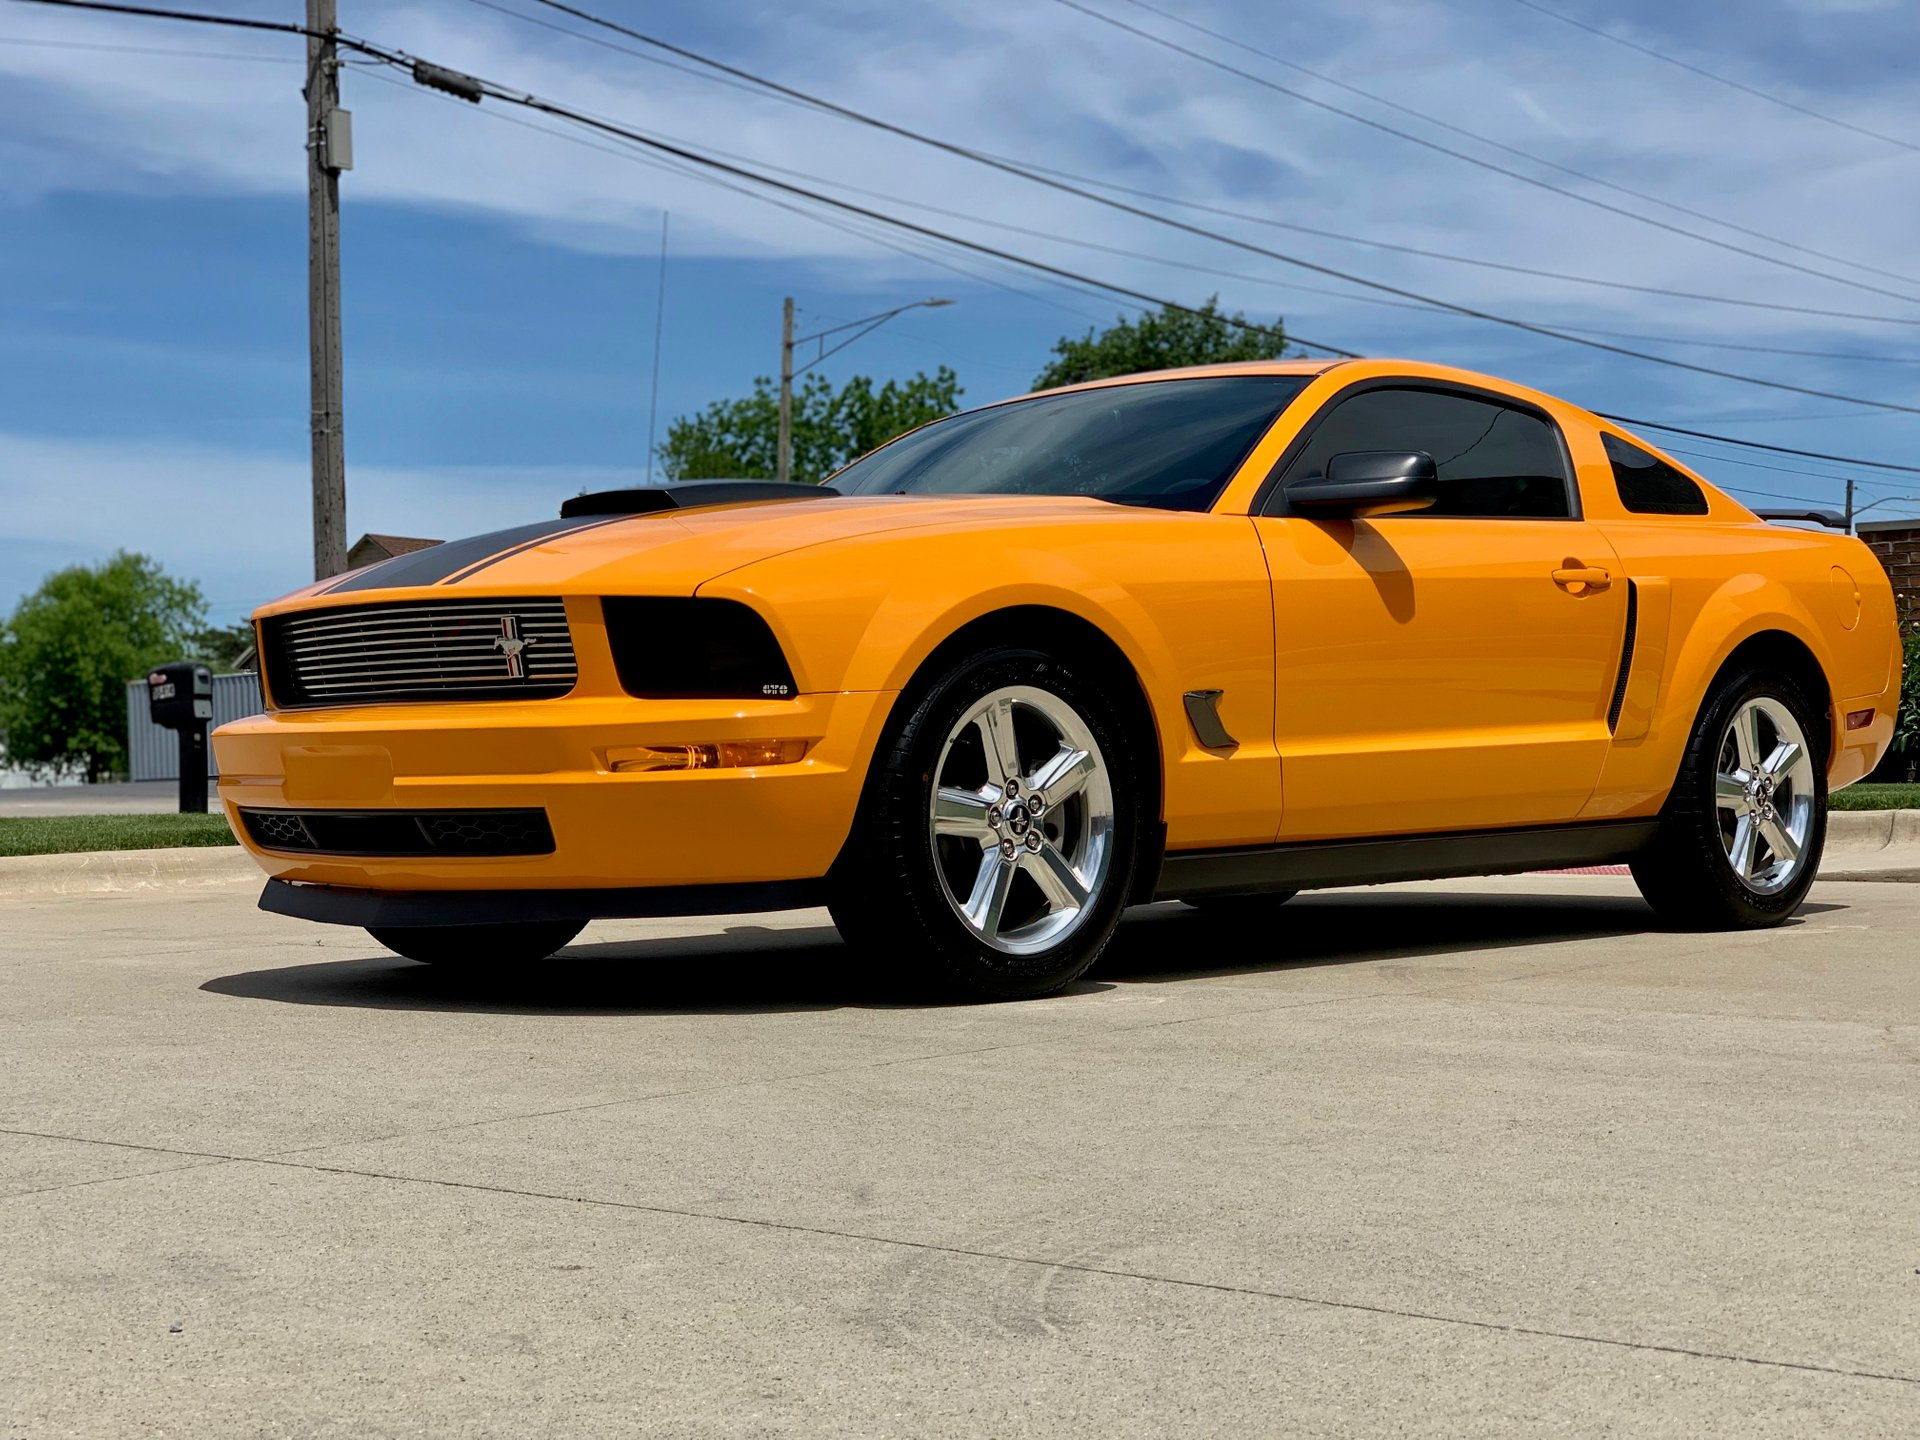 2008 Ford Mustang | Showdown Auto Sales - Drive Your Dream